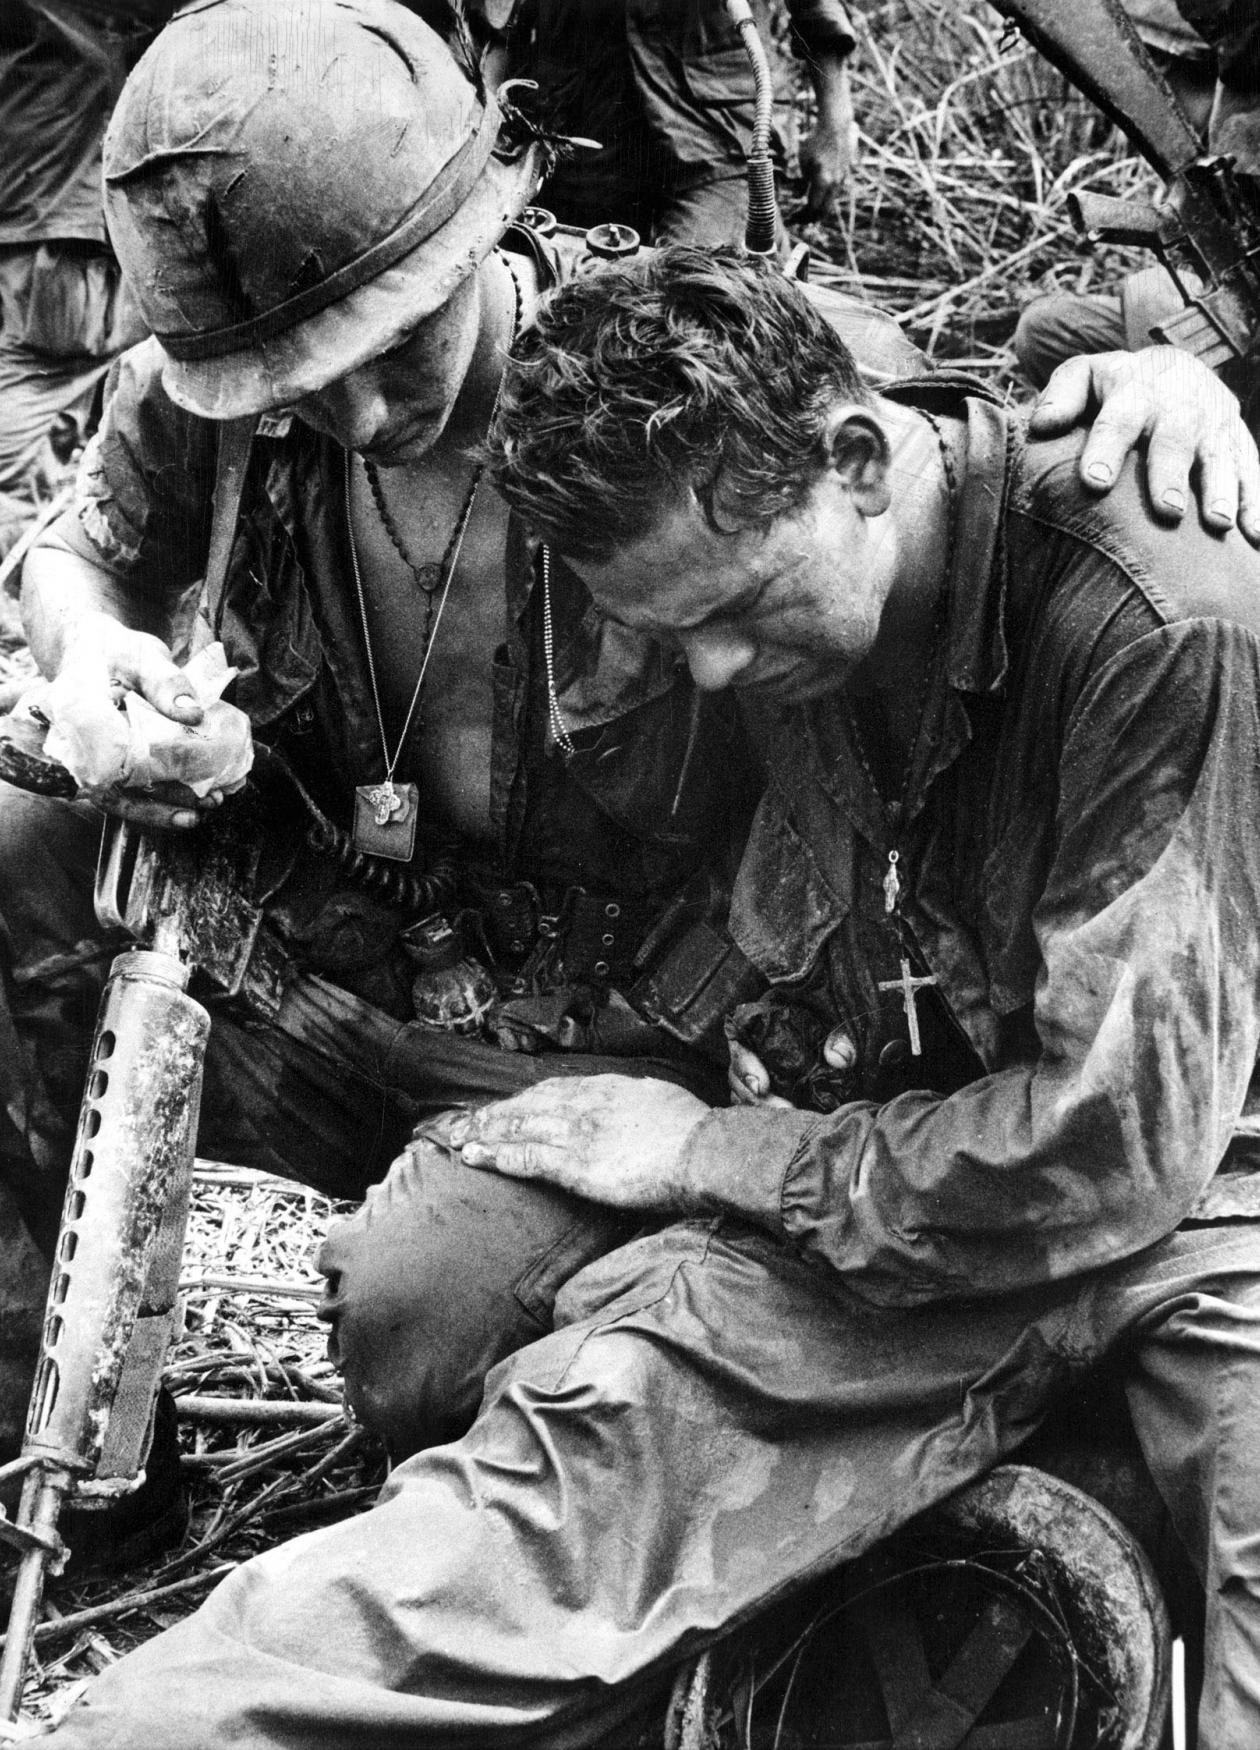 Black and white photograph of two American soldiers in Pleiku, South Vietnam